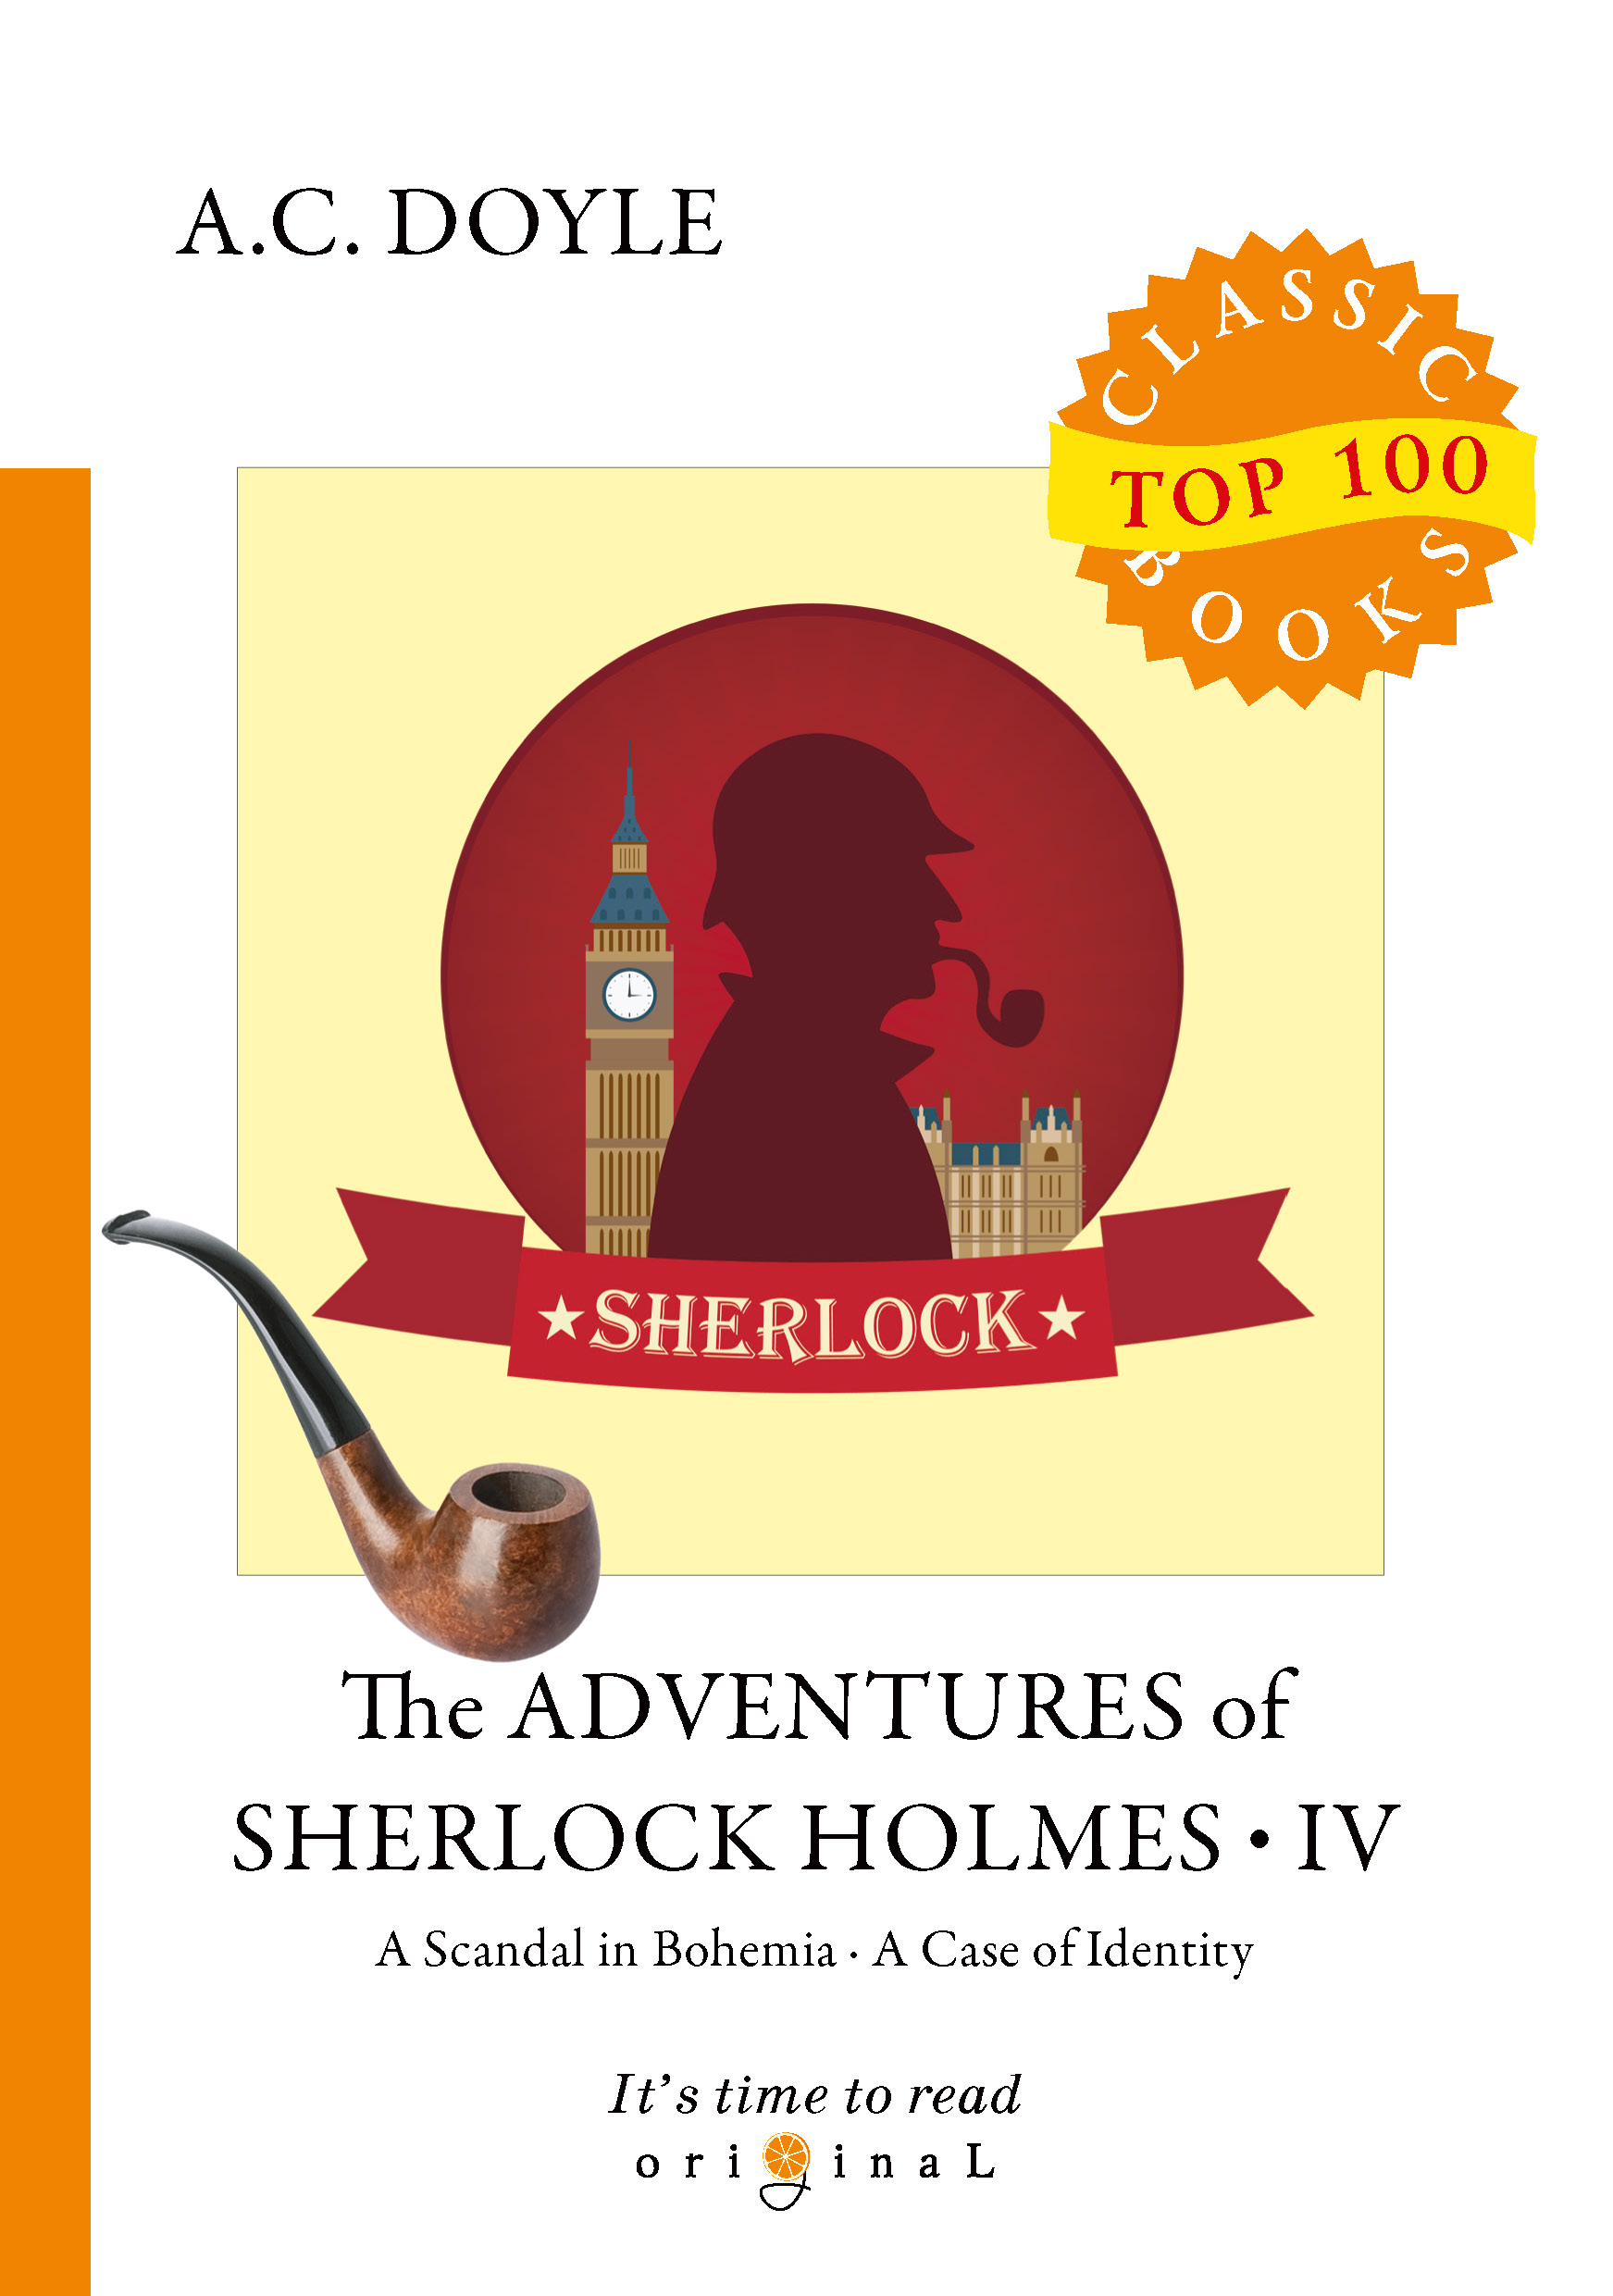 A. C. Doyle The Adventures of Sherlock Holmes IV